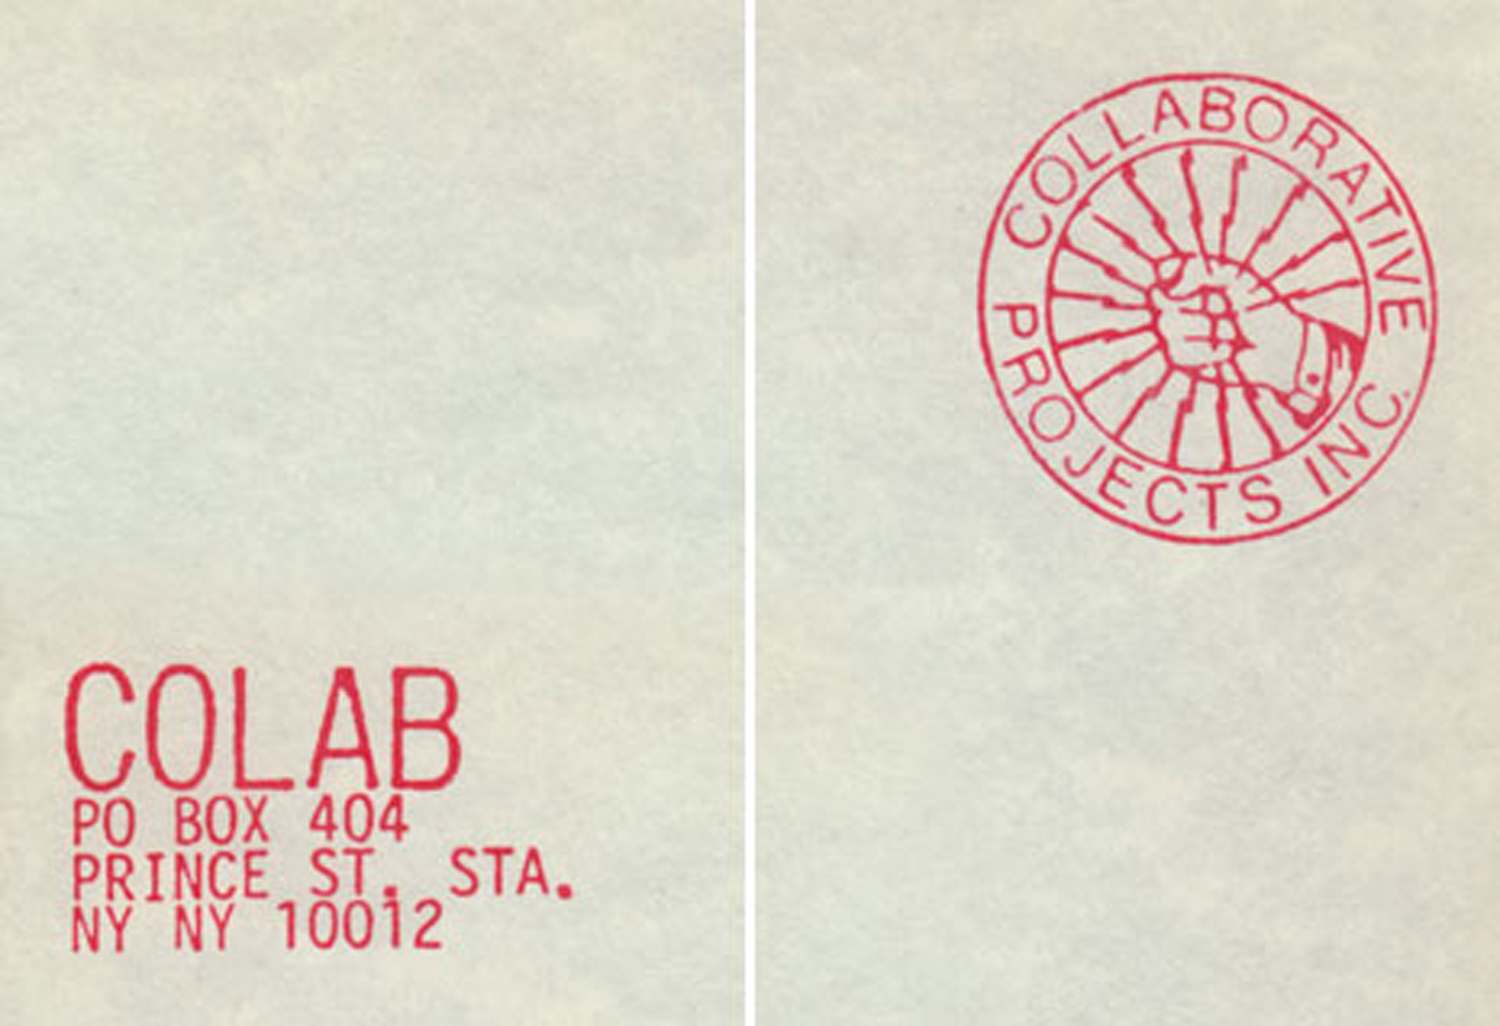 Colab Letterhead and Logo (taken from printed Stationary), c. 1985